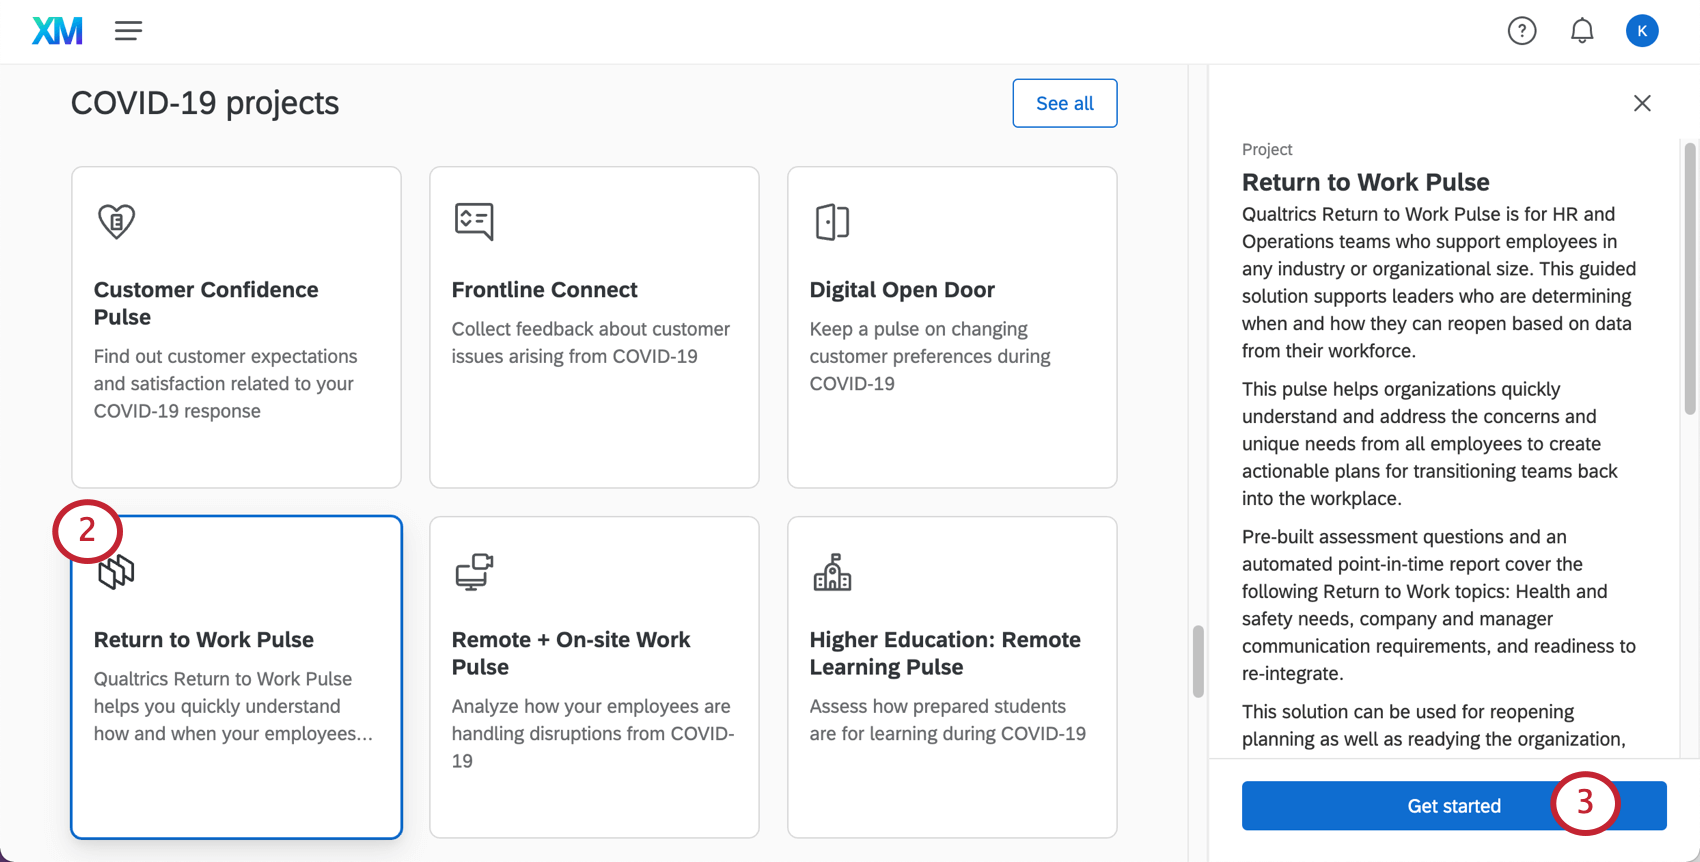 Image of catalog, selecting the described project, seeing a sidebar open on the right describing it, ending with a button to get started creating it